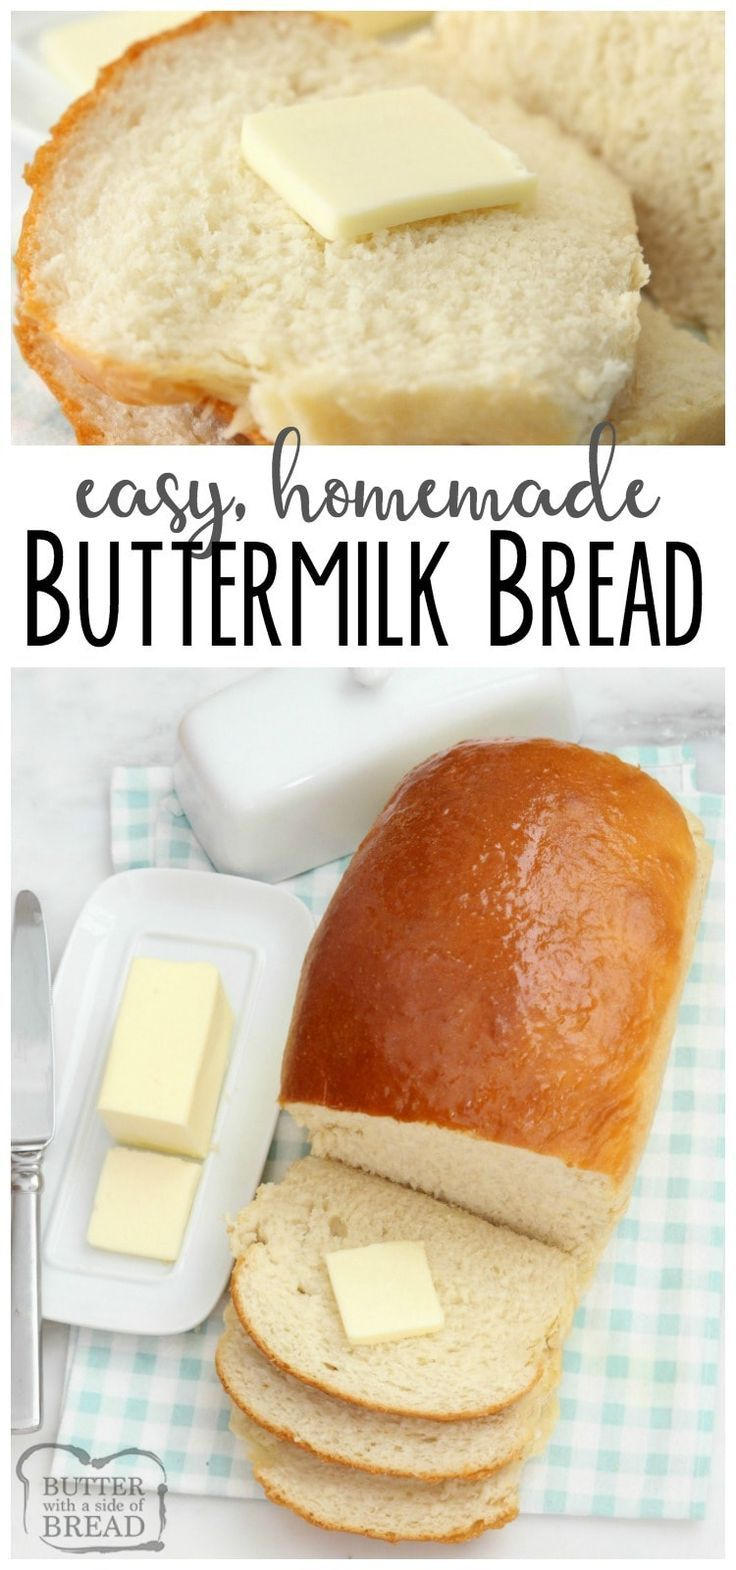 Buttermilk Bread Baked Fresh In Your Kitchen With This Easy Recipe This Recipe For Homemade Bread Is Bread Maker Recipes Dog Cake Recipes Homemade Buttermilk